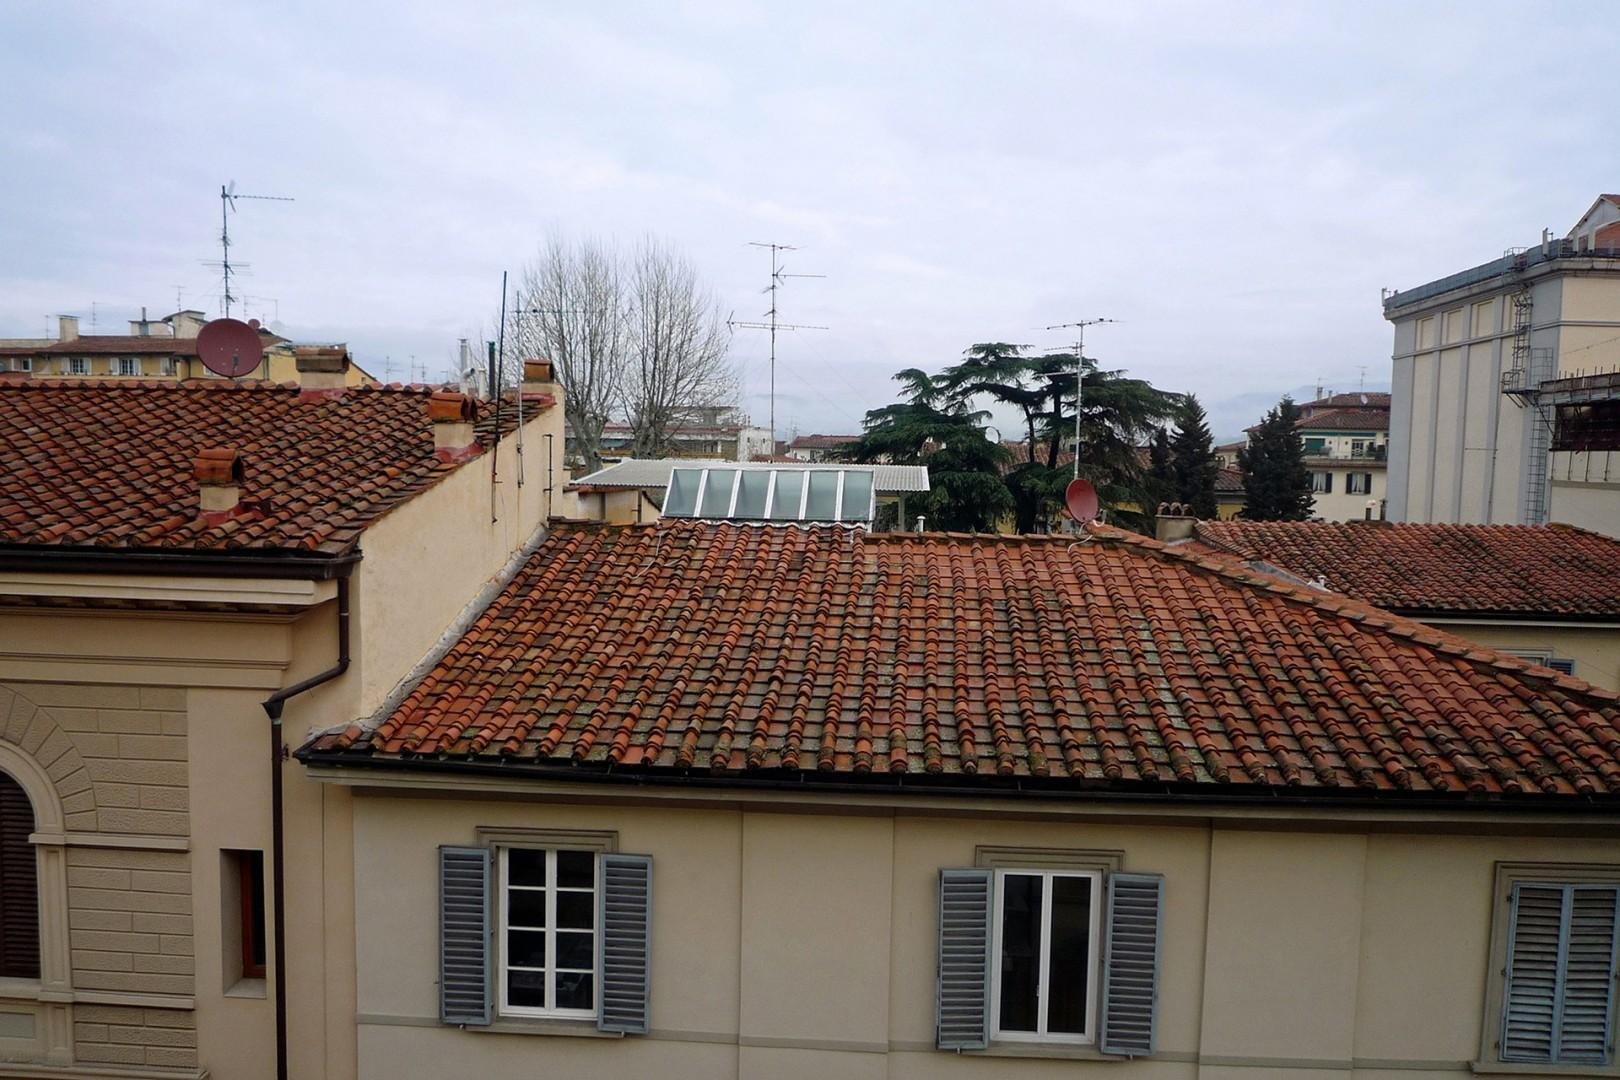 Pleasant views from the living room window of rooftops and trees in the distance.